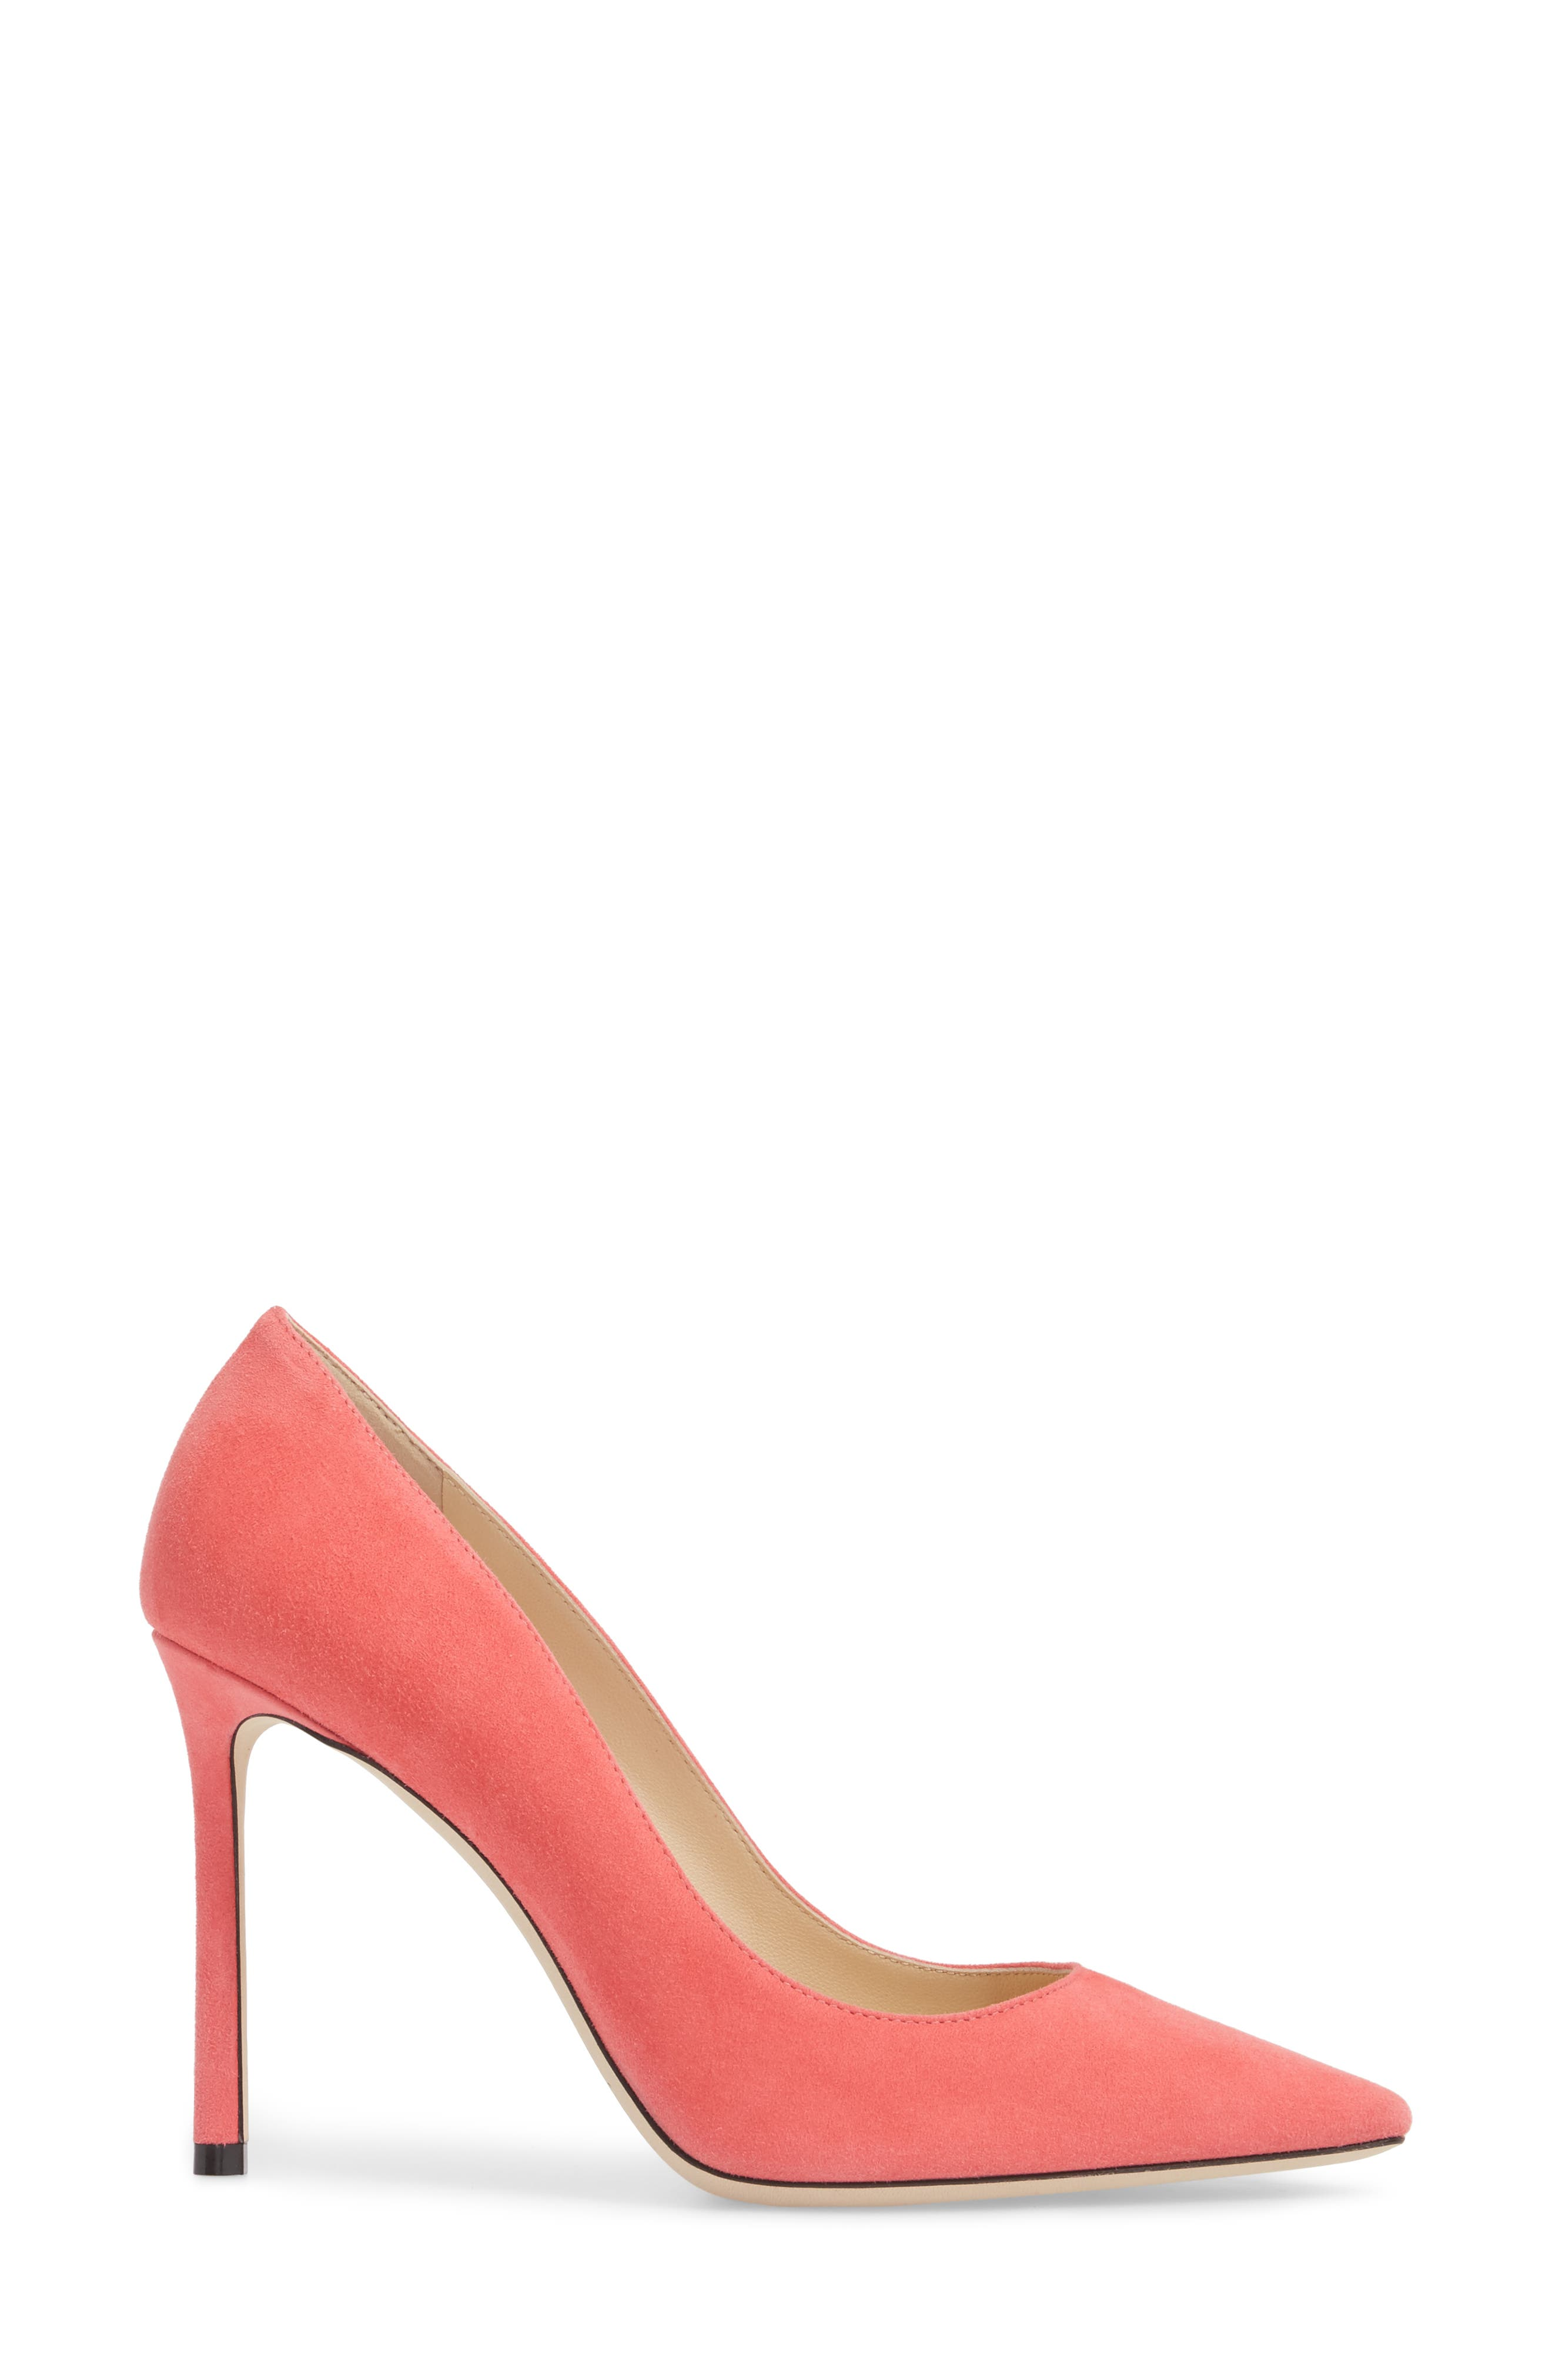 'Romy' Pointy Toe Pump,                             Alternate thumbnail 3, color,                             Flamingo Pink